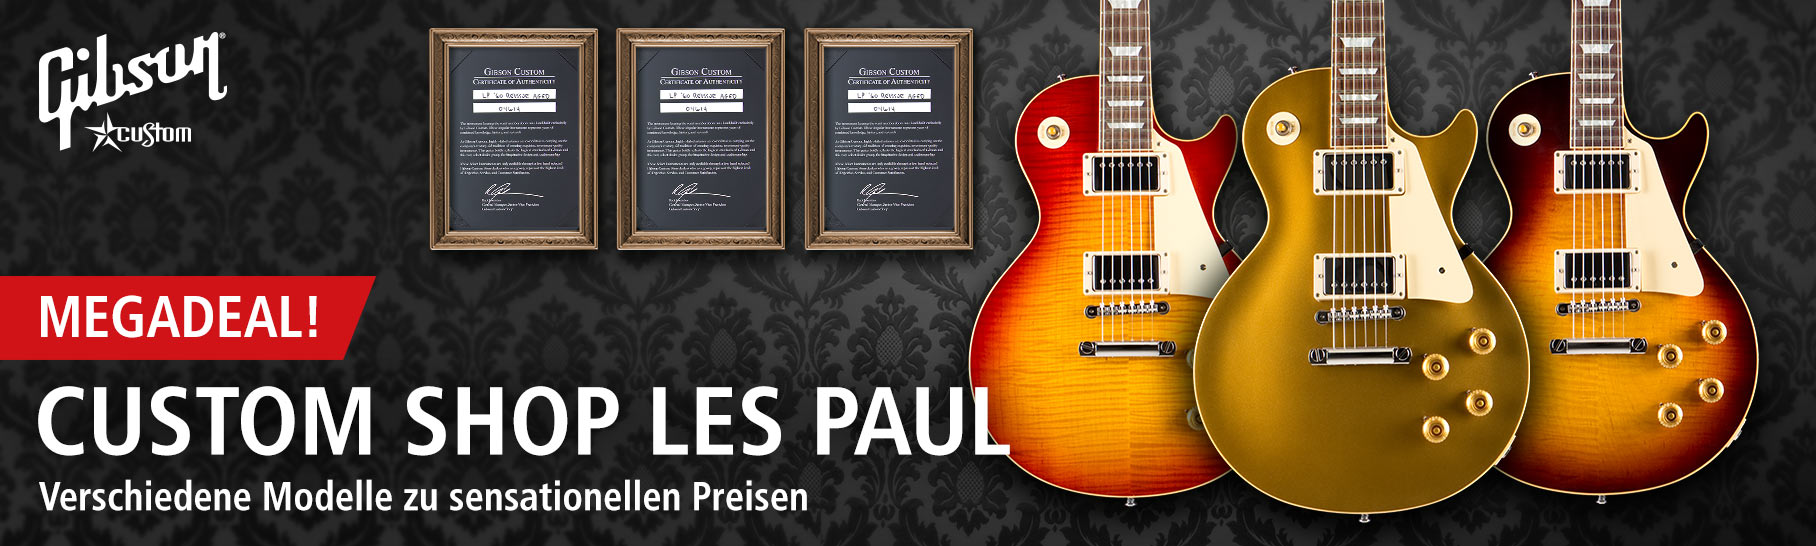 Gibson Custom Shop Les Paul